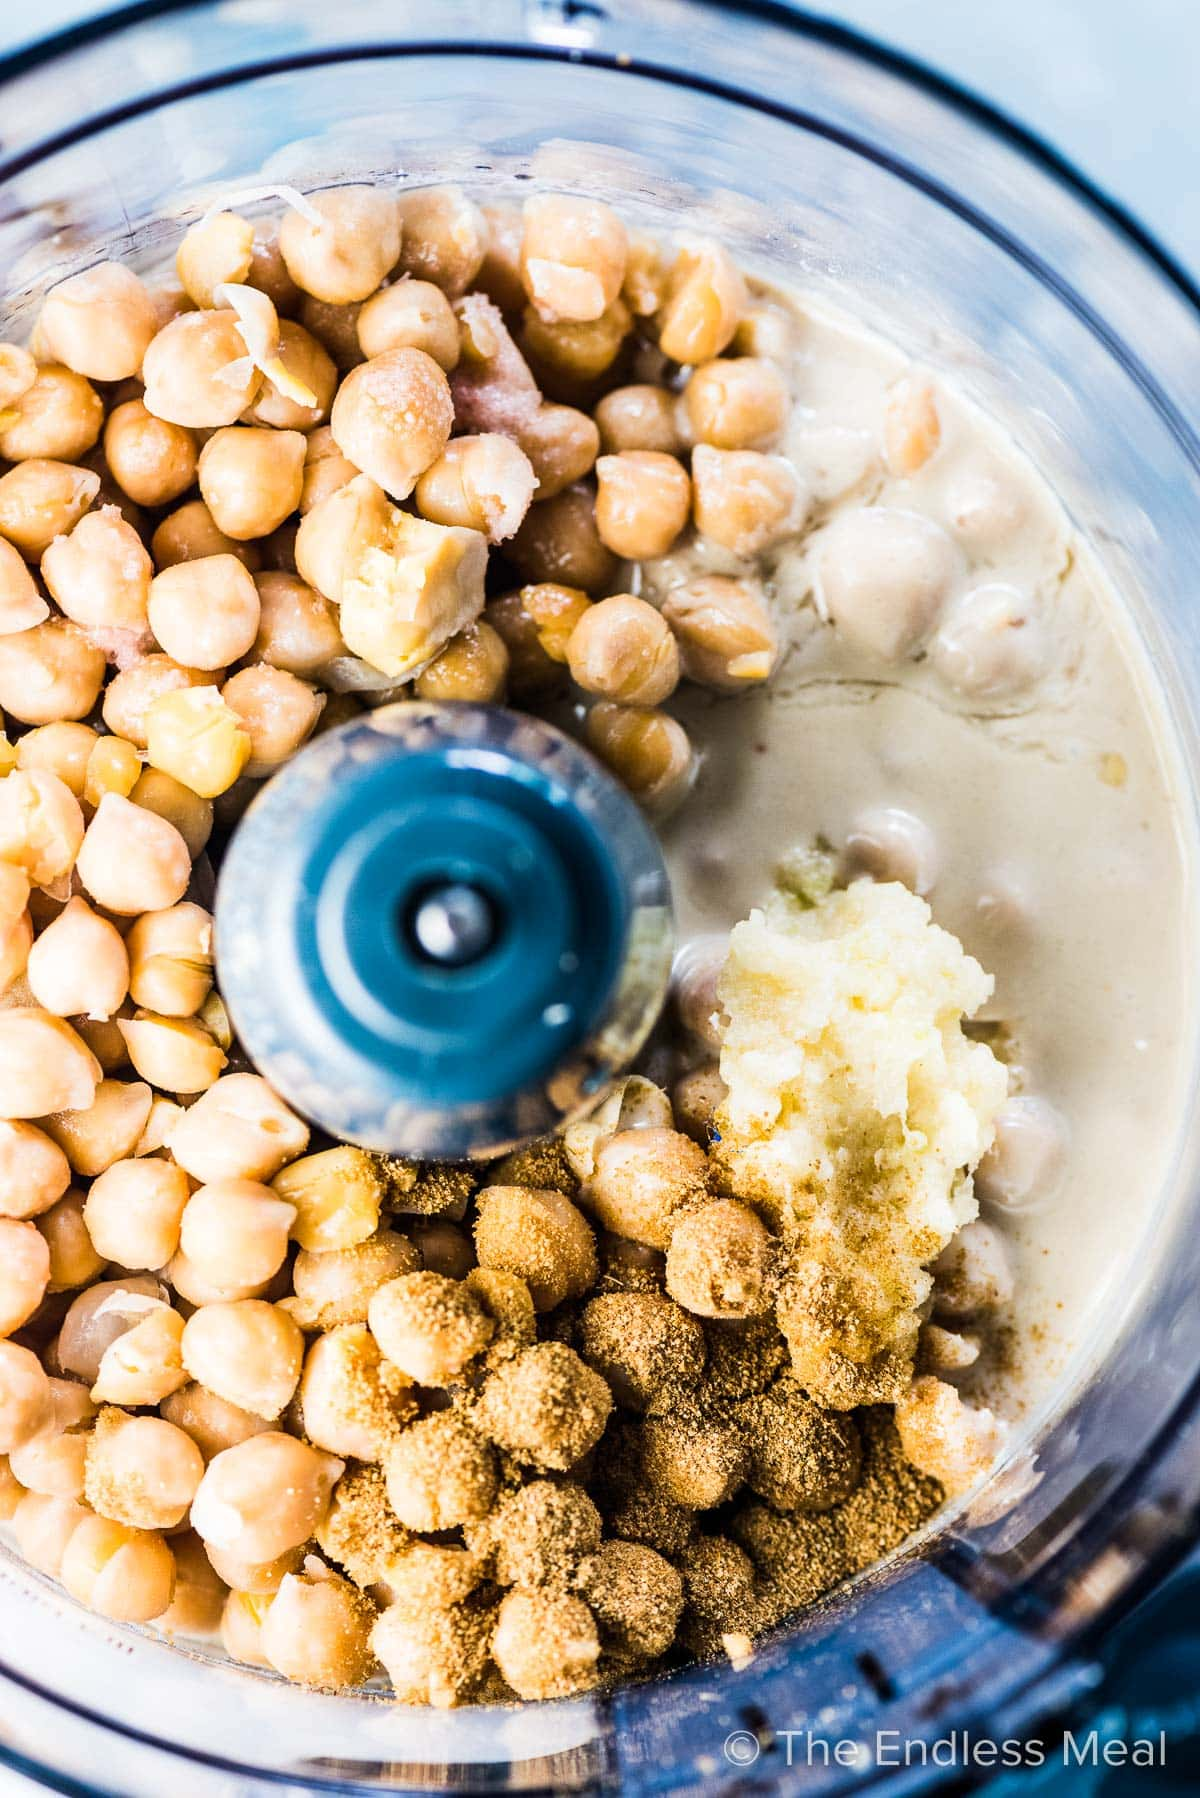 All the ingredients for this hummus recipe in a food processor.